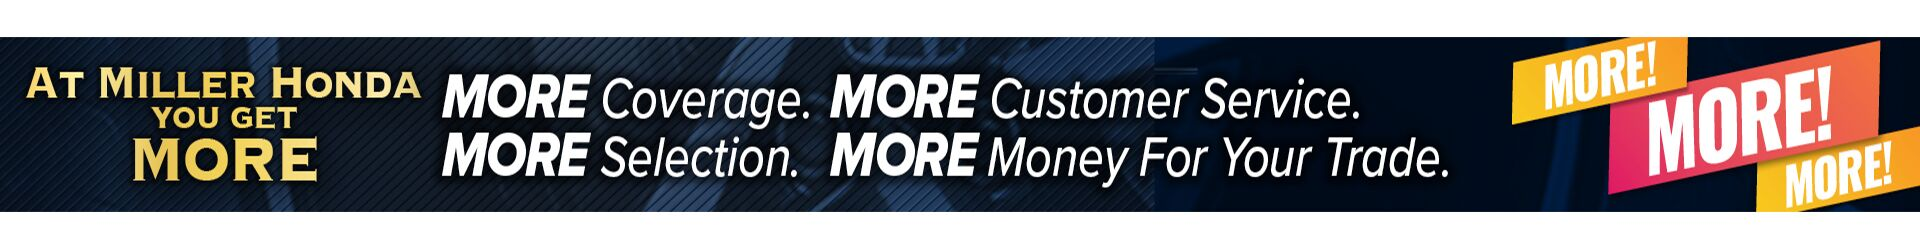 Get More at Miller Honda!